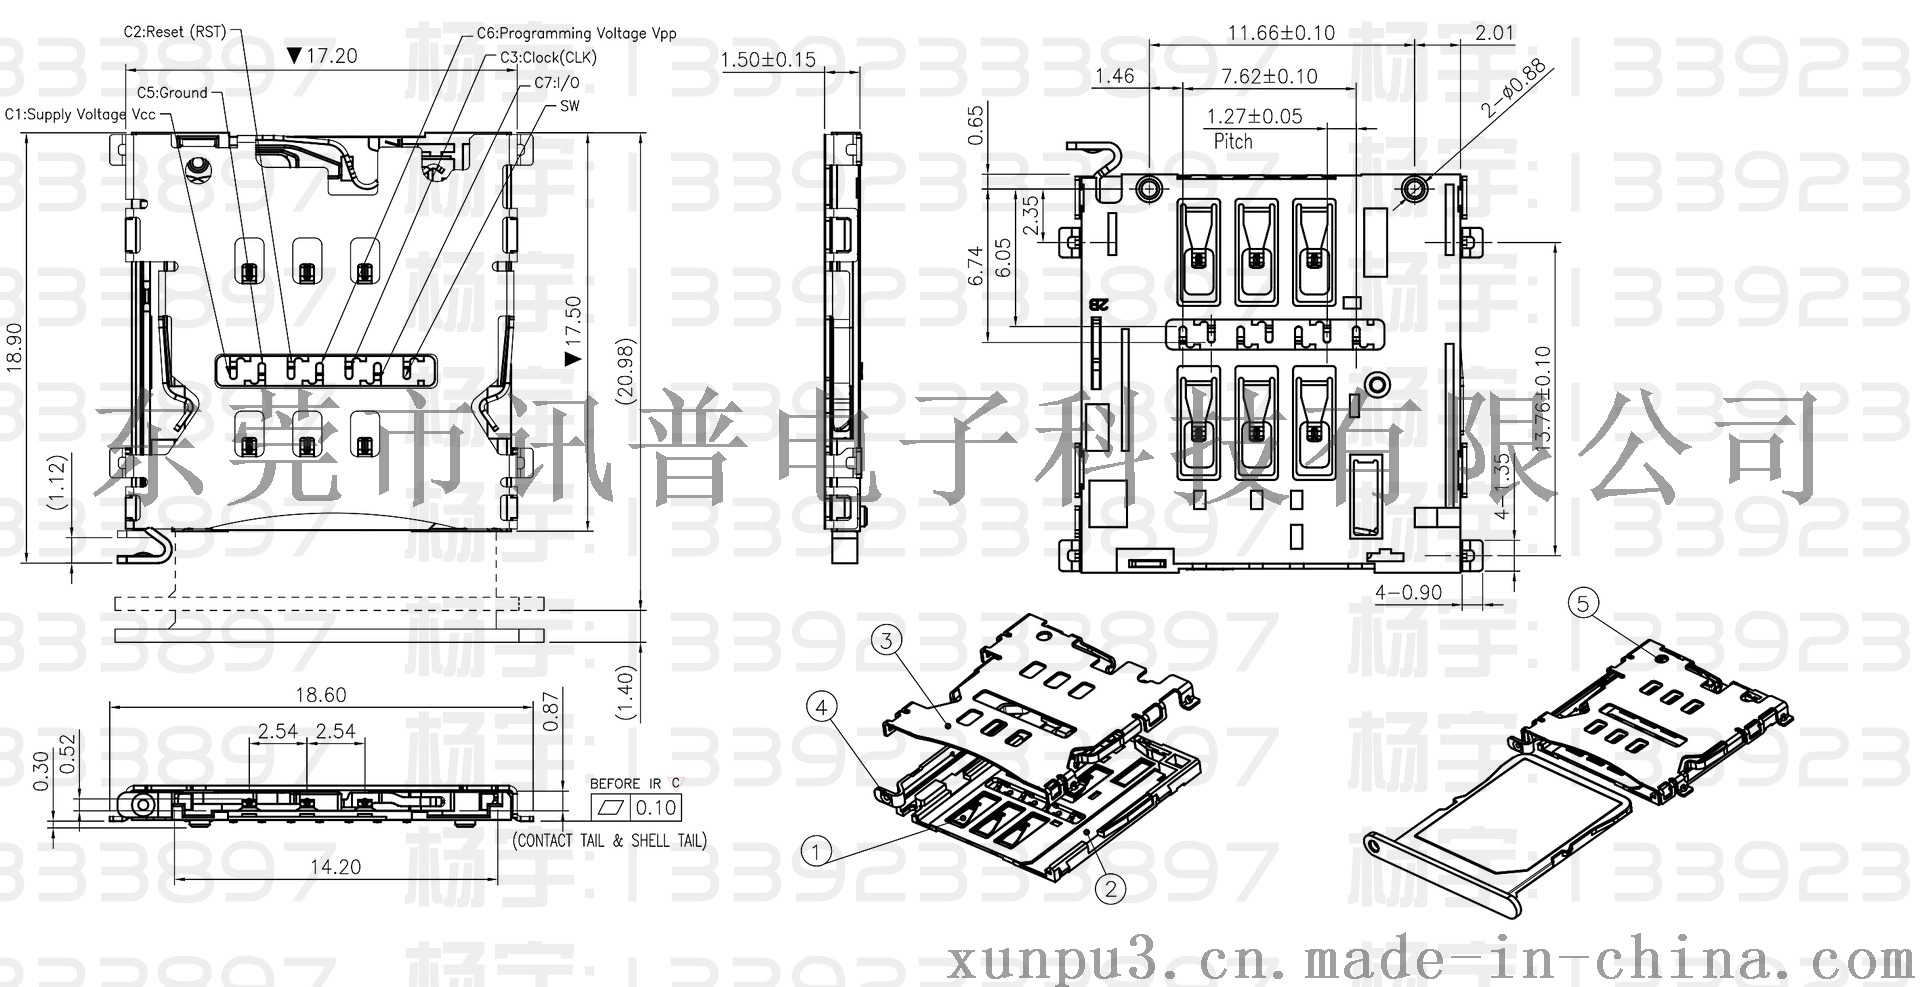 15hmicro Simsmc 217htc One X Htc Circuit Diagram Mounting Hole Dimensions